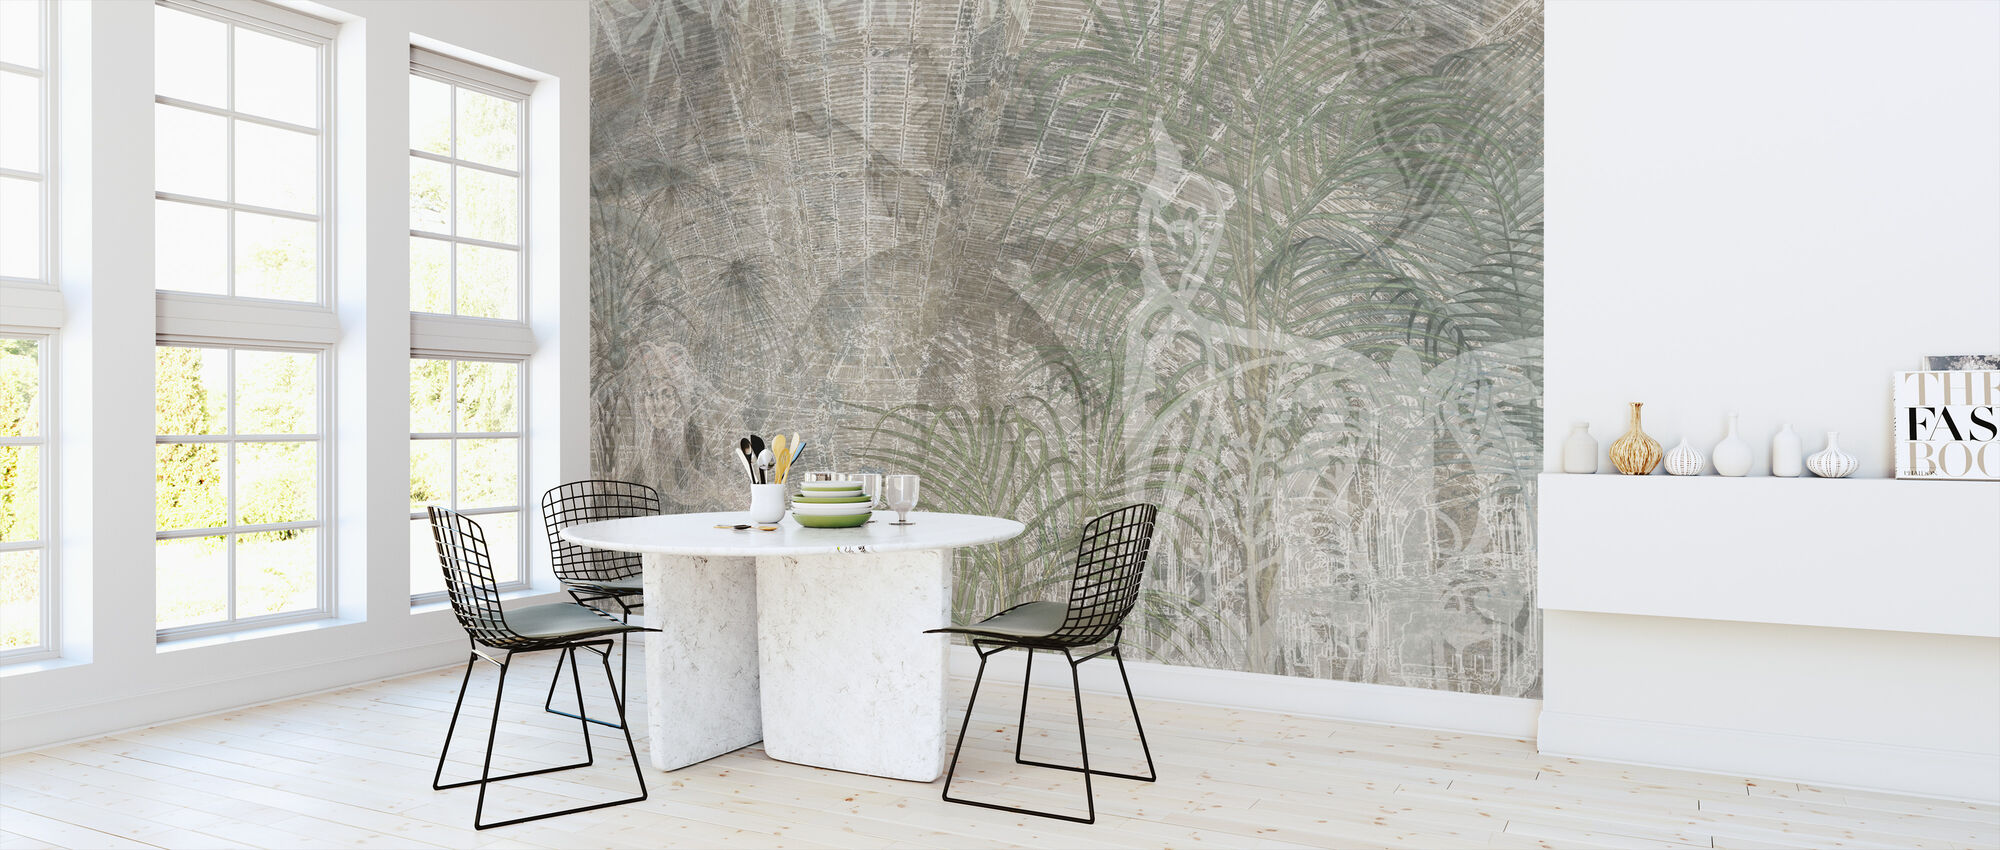 Reminiscence Series Palm Trees - Wallpaper - Kitchen